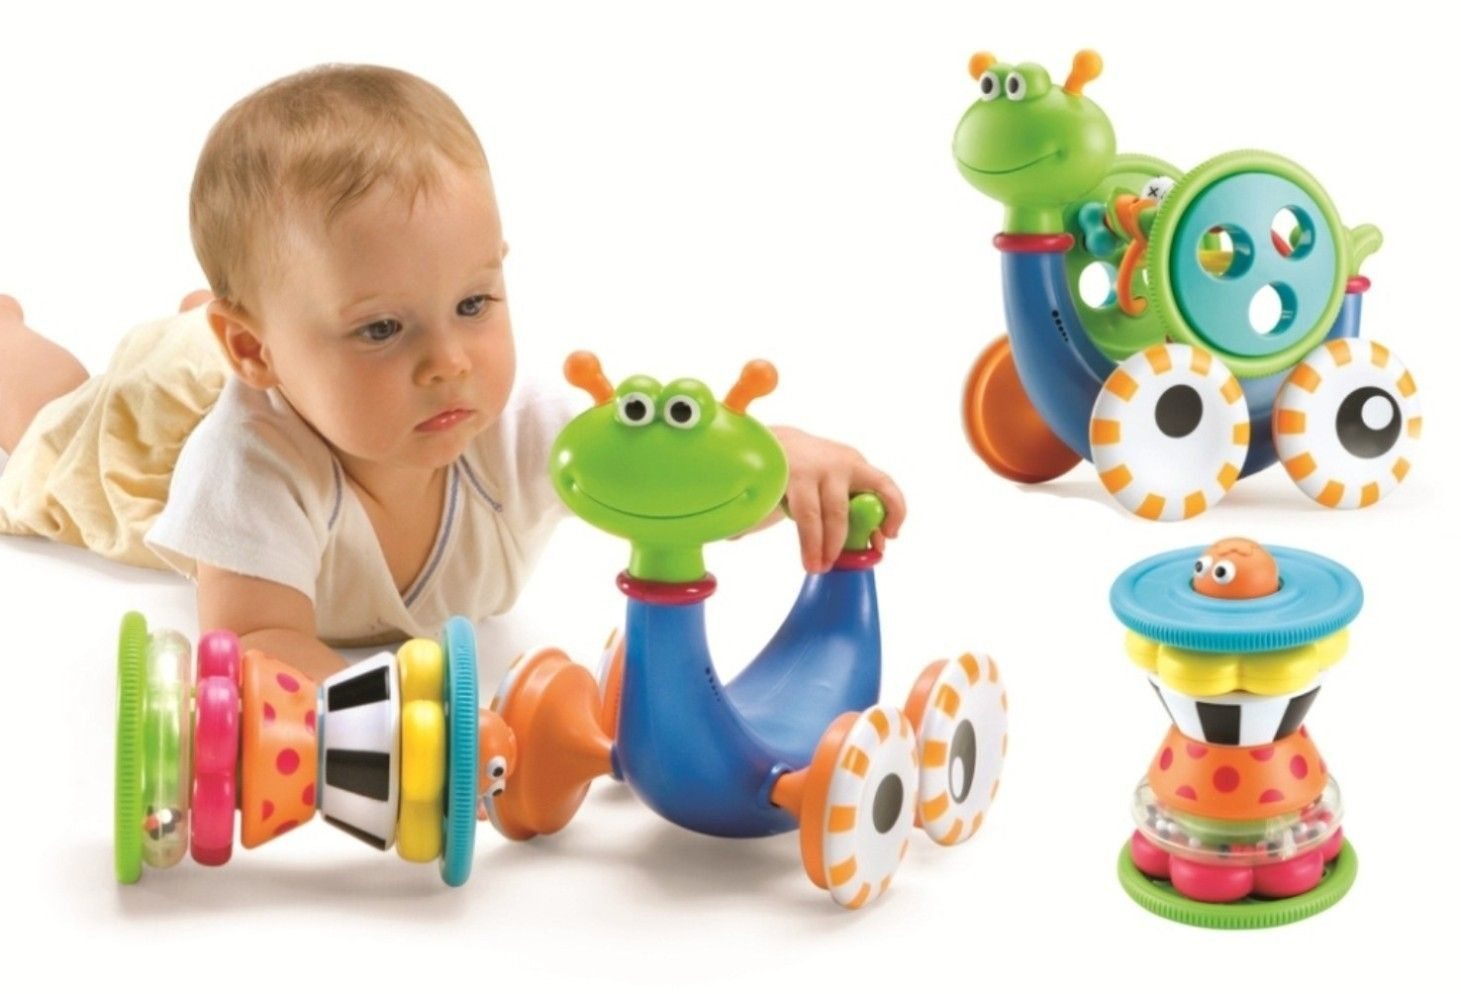 Your baby will be thrilled as it plays with Crawl N' Go